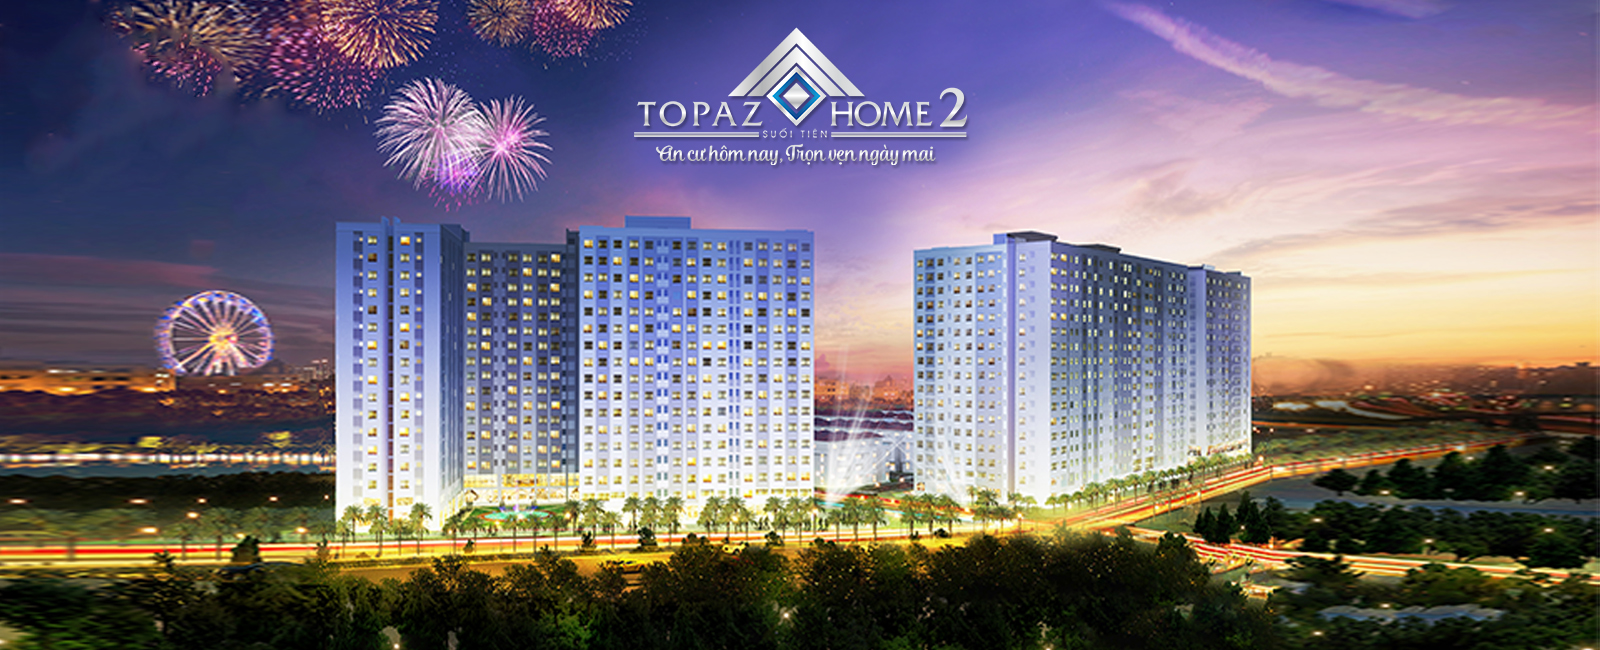 banner-can-ho-topaz-home-2